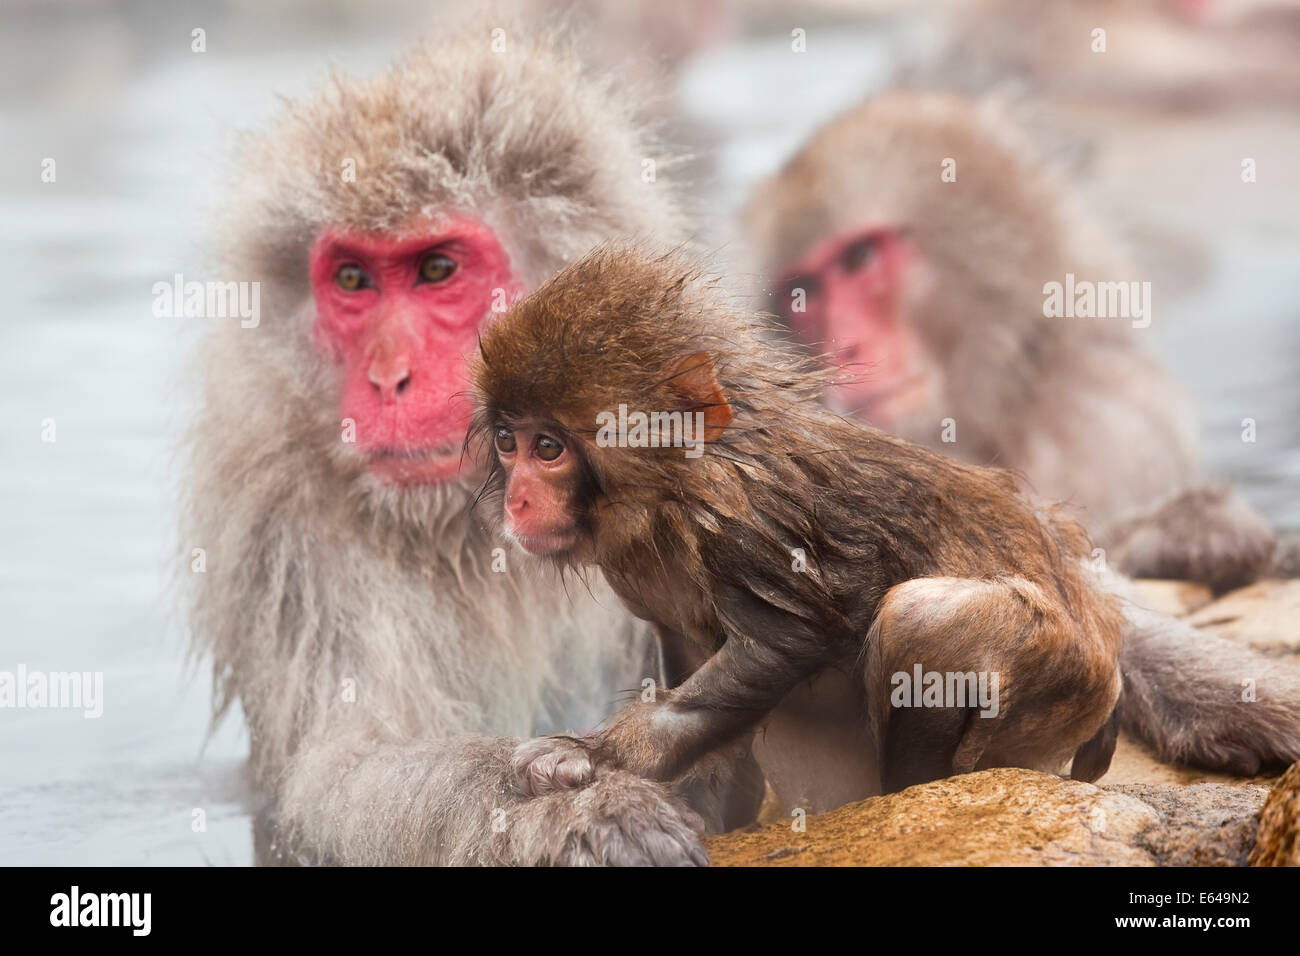 Japanese macaque (Macaca fuscata)/ Snow monkey, Joshin-etsu National Park, Honshu, Japan - Stock Image